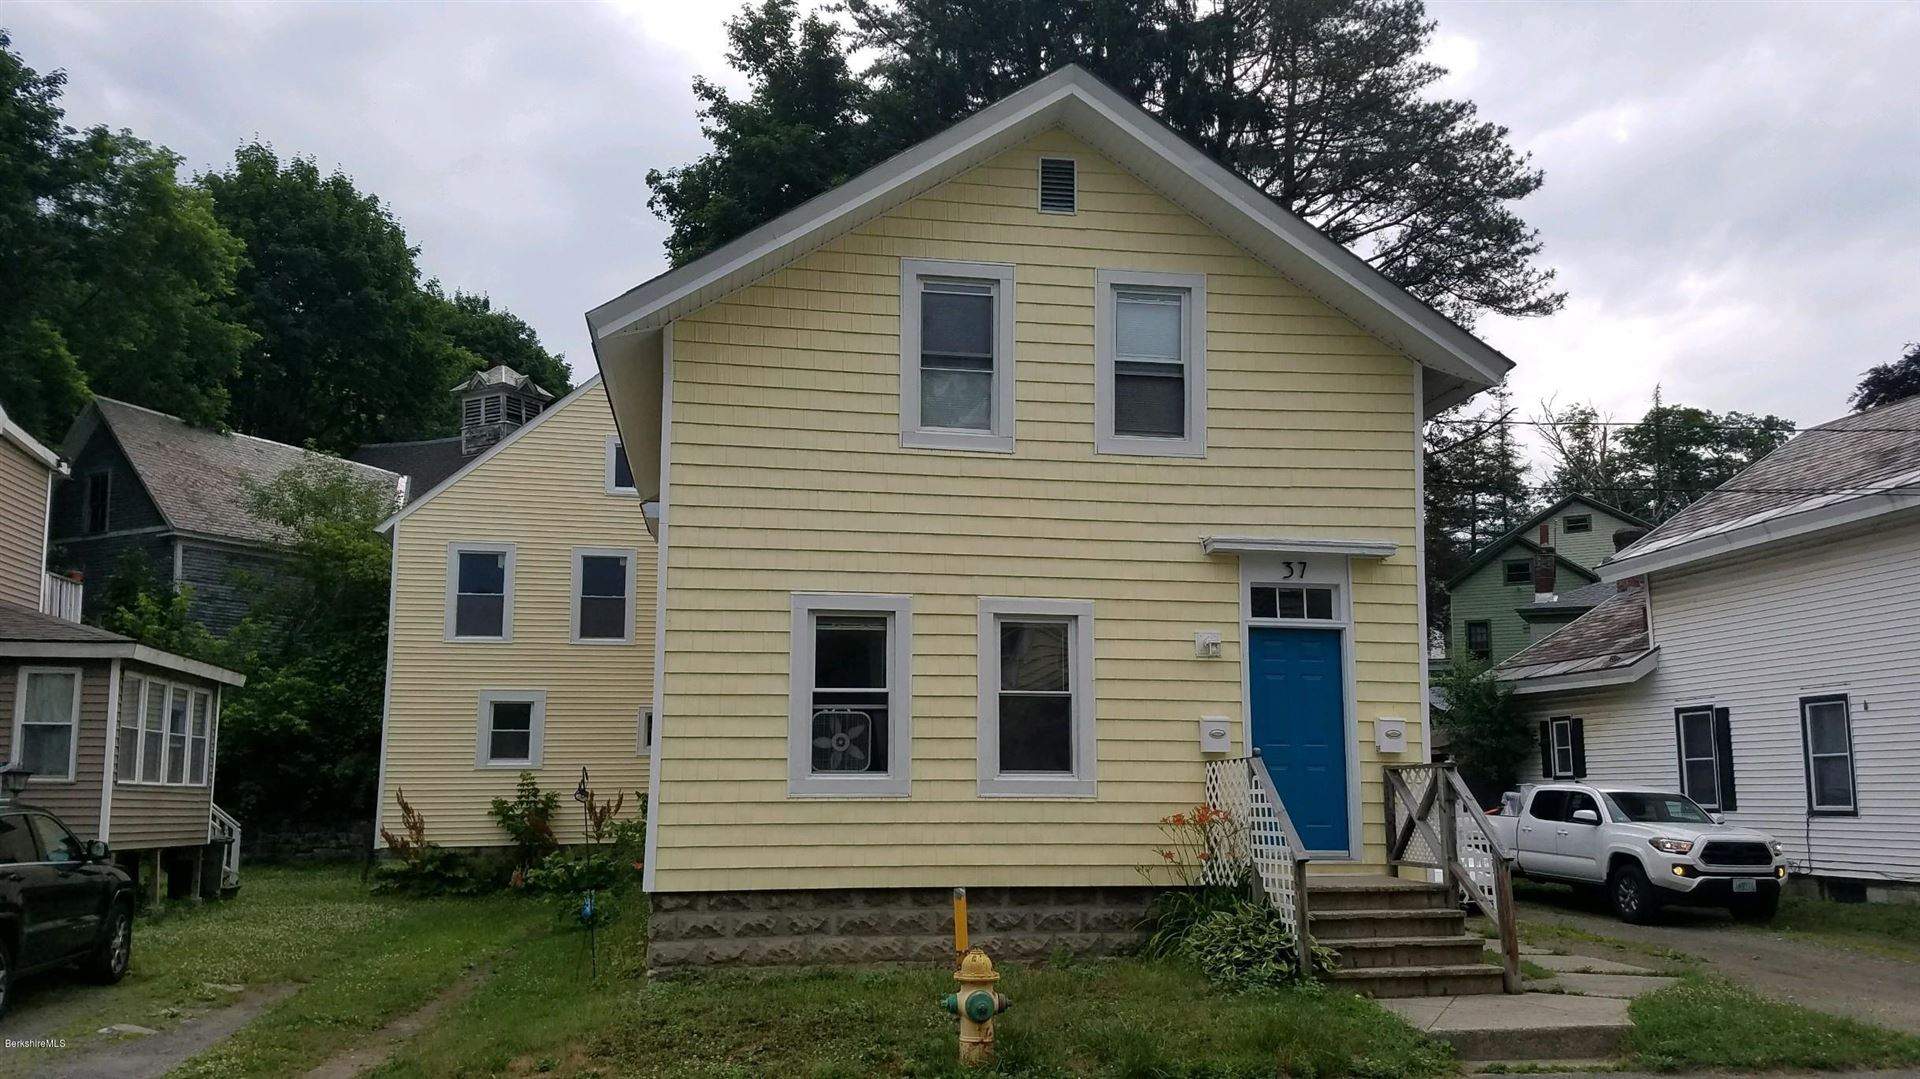 37 South St, North Adams, MA 01247 - #: 231345